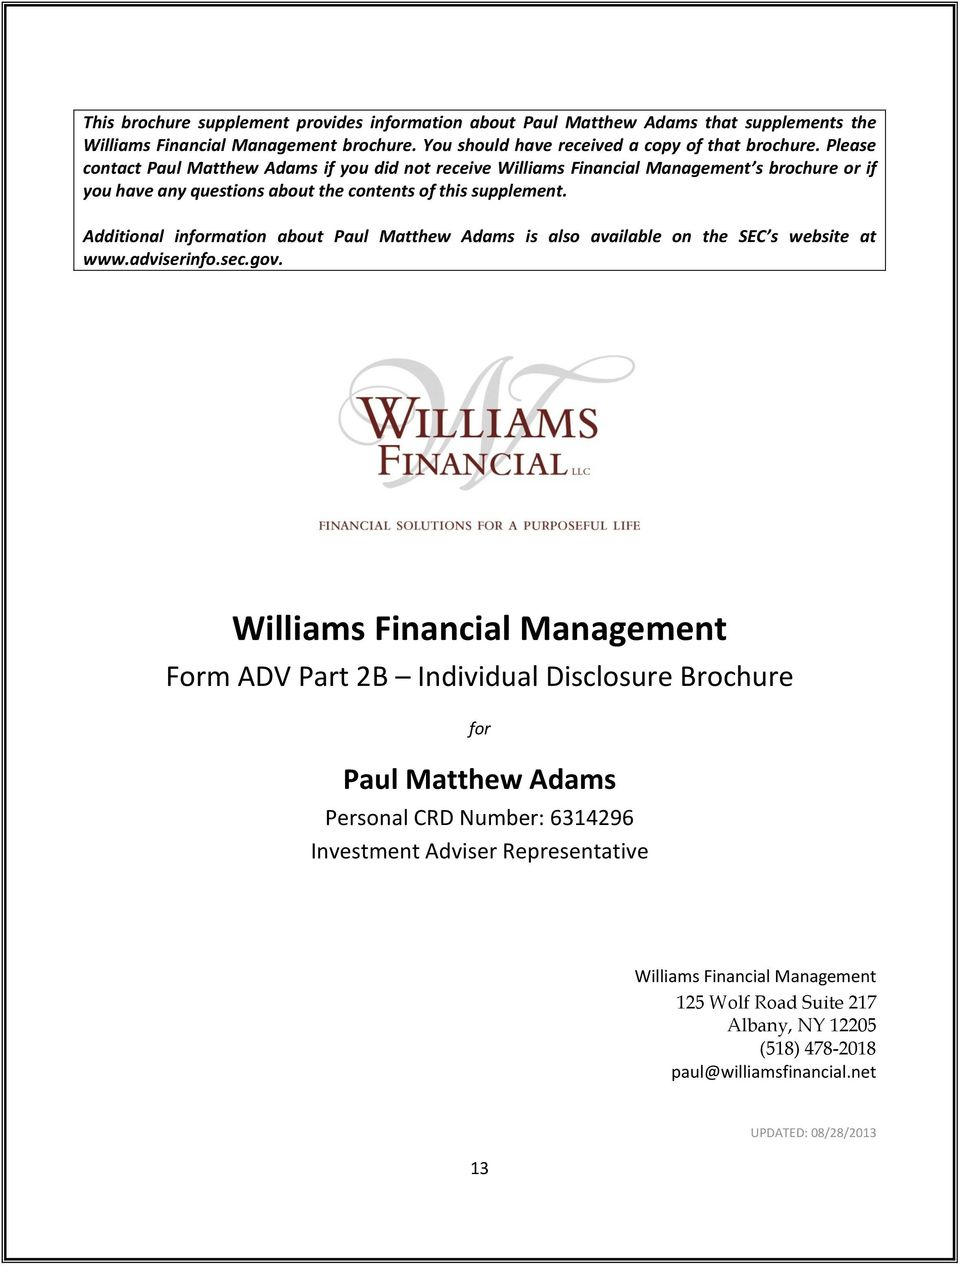 Additional information about Paul Matthew Adams is also available on the SEC s website at www.adviserinfo.sec.gov.